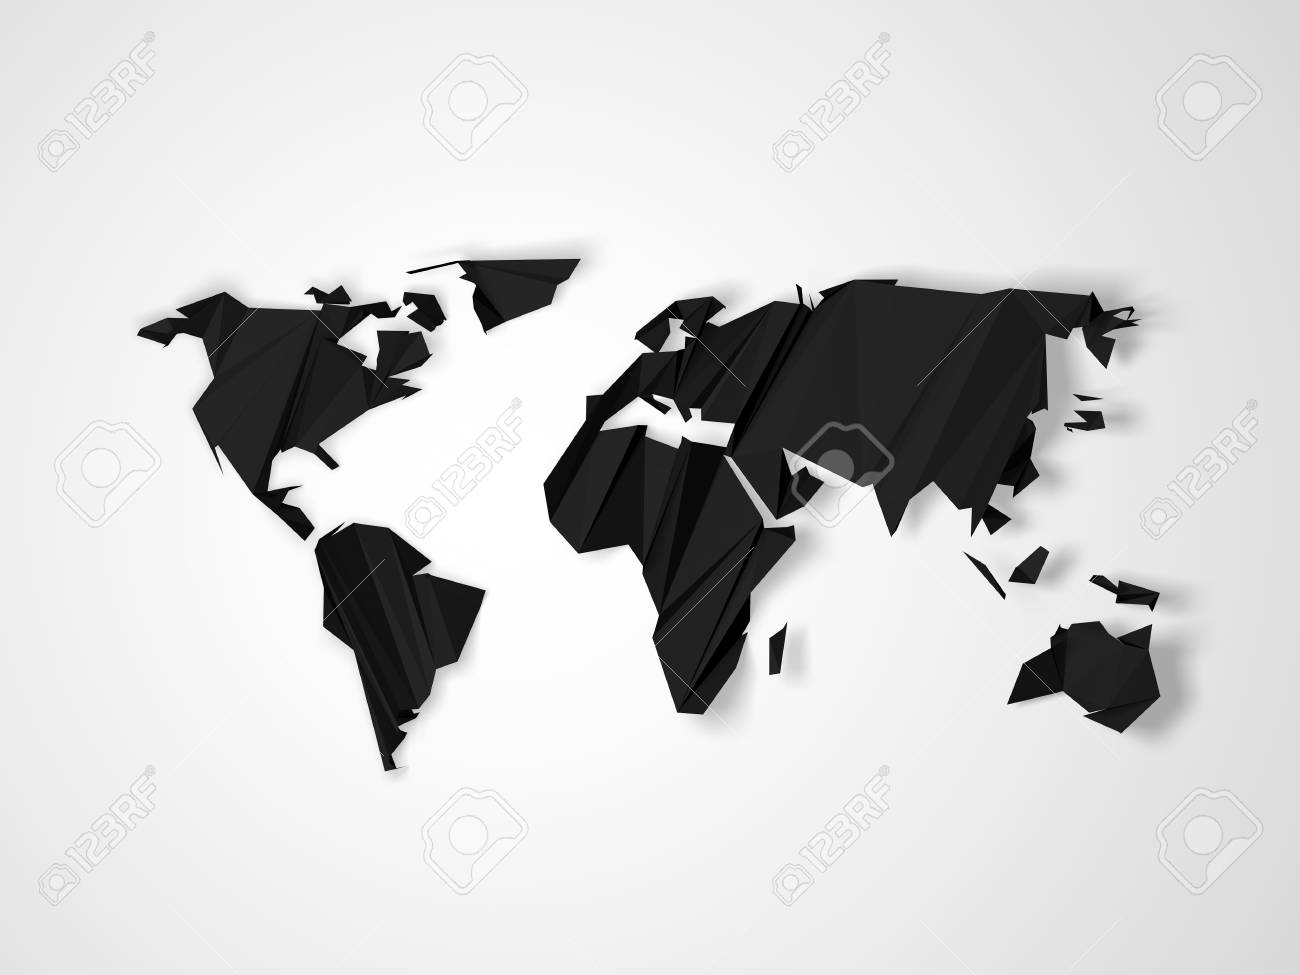 Polygonal dark gray world map isolated on white background abstract illustration polygonal dark gray world map isolated on white background abstract 3d illustration render gumiabroncs Choice Image